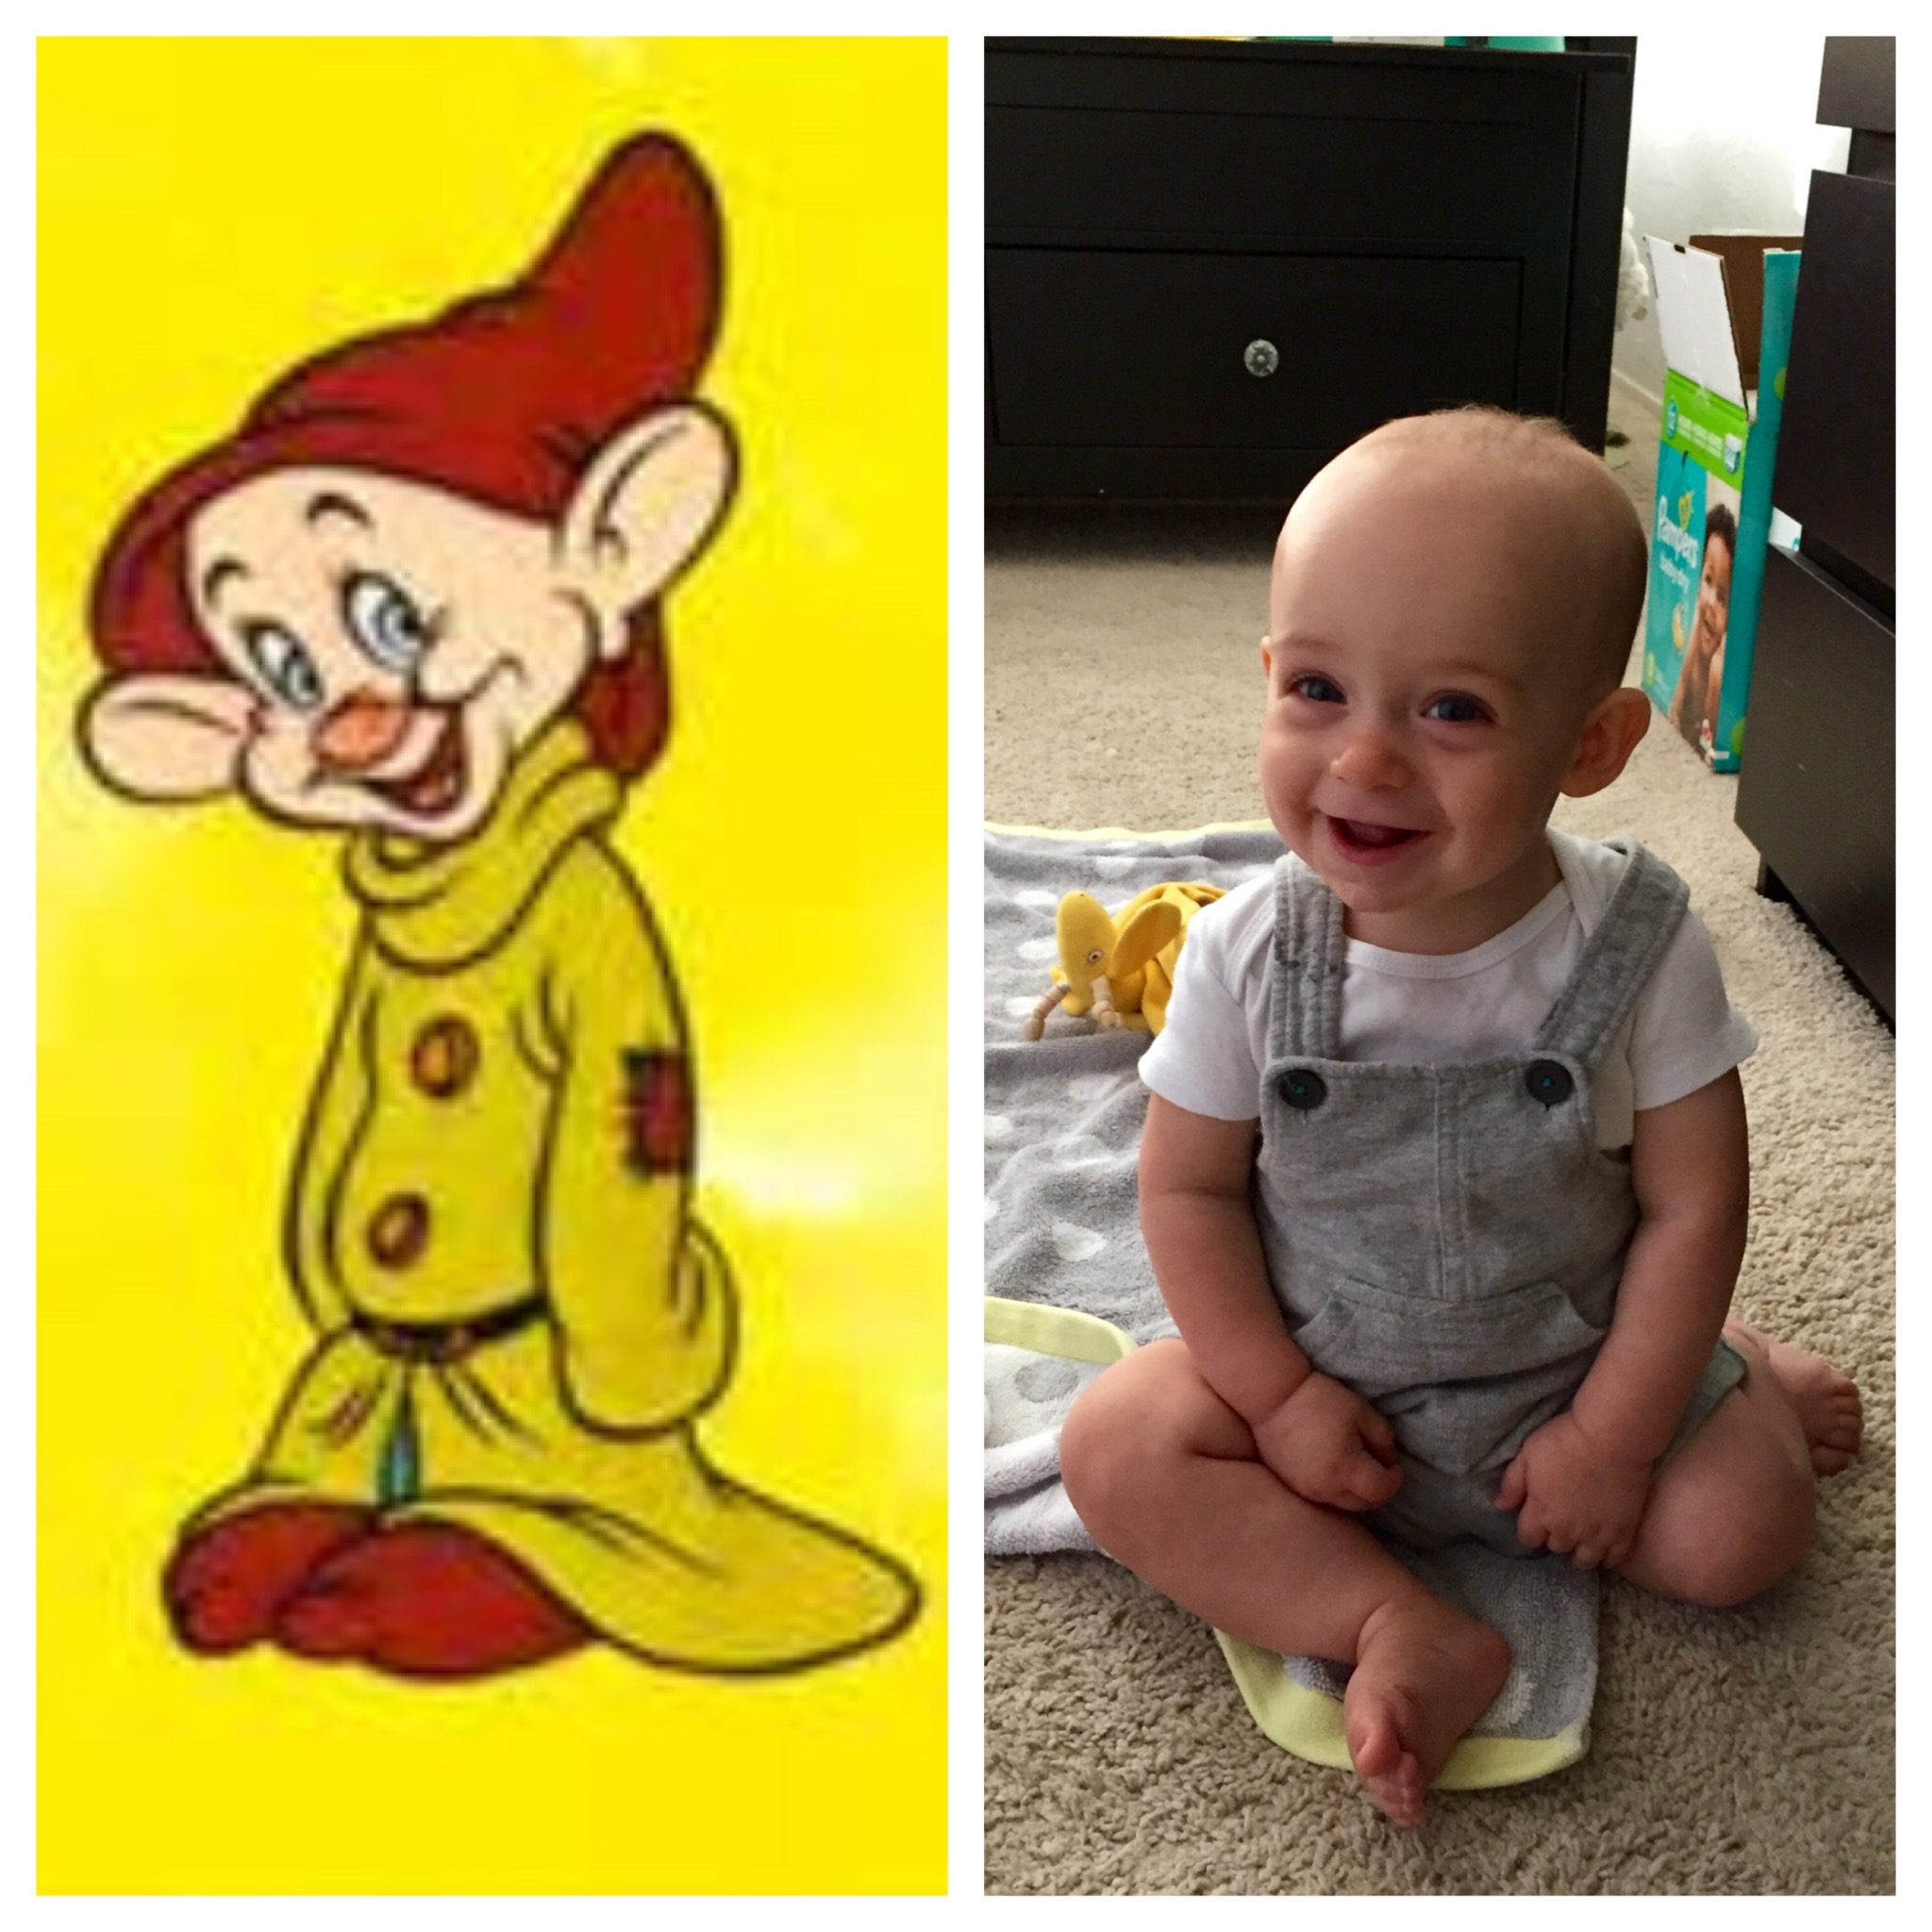 Dopey the dwarf costume a simple diy for halloween solutioingenieria Image collections